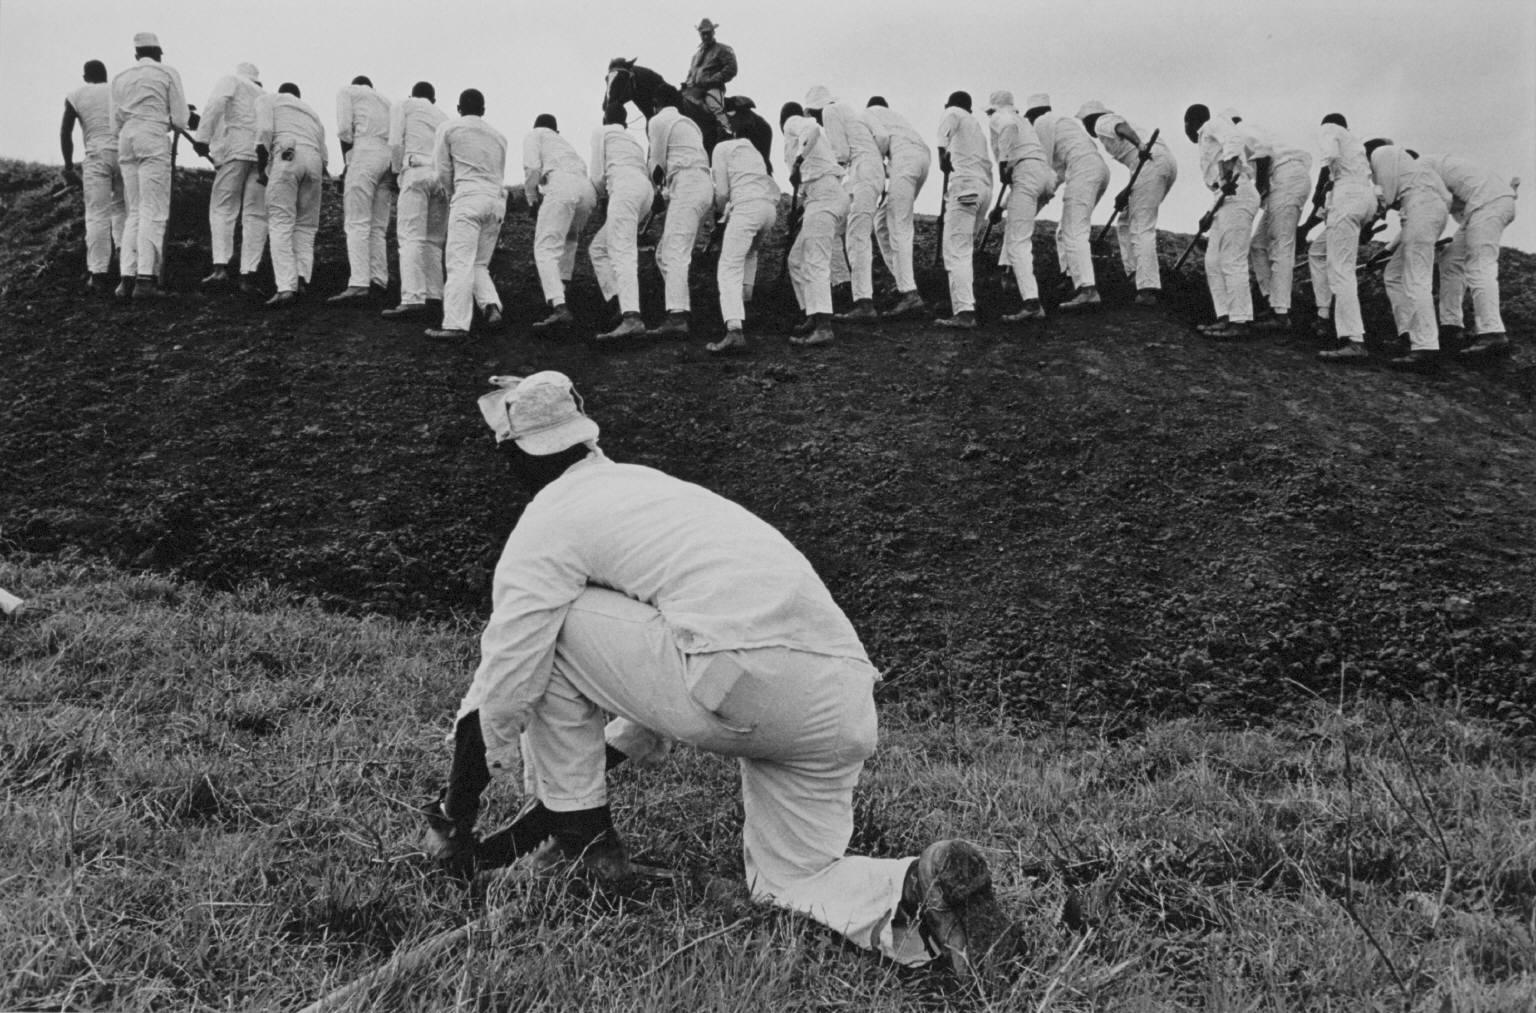 """""""Hoe sharpener and the Line"""" from Conversations with the Dead by Danny Lyon  --circa 1967-68."""